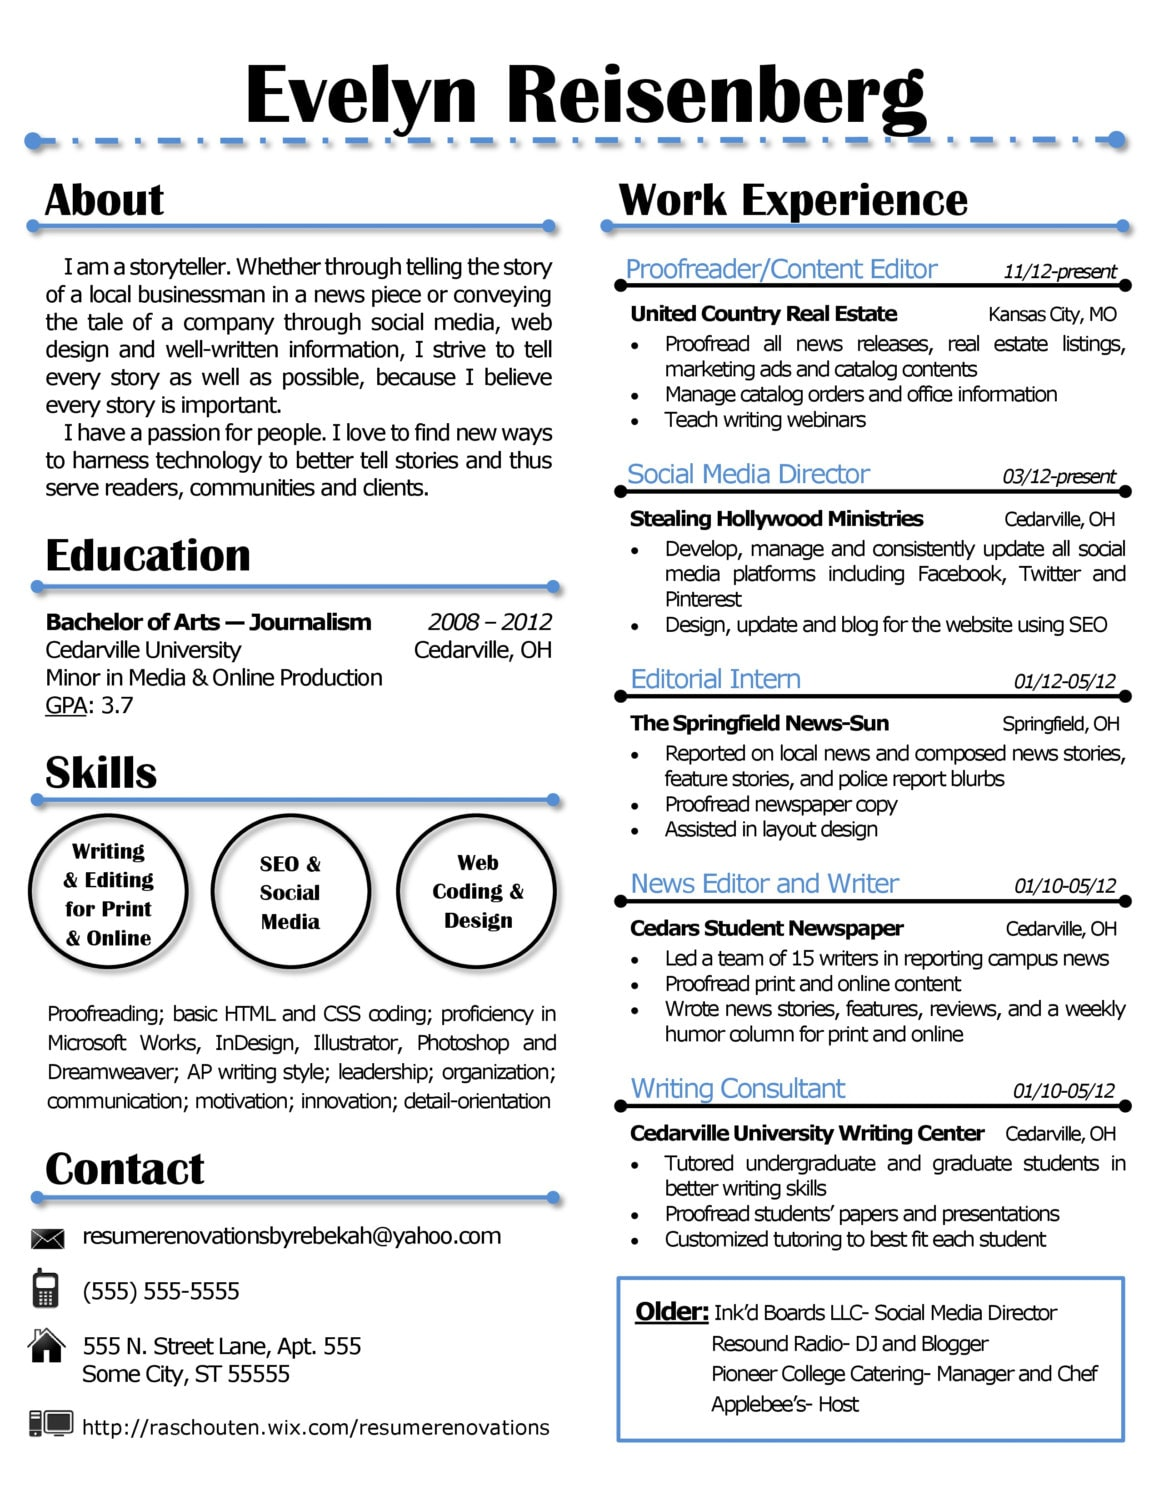 Catchy resume titles examples